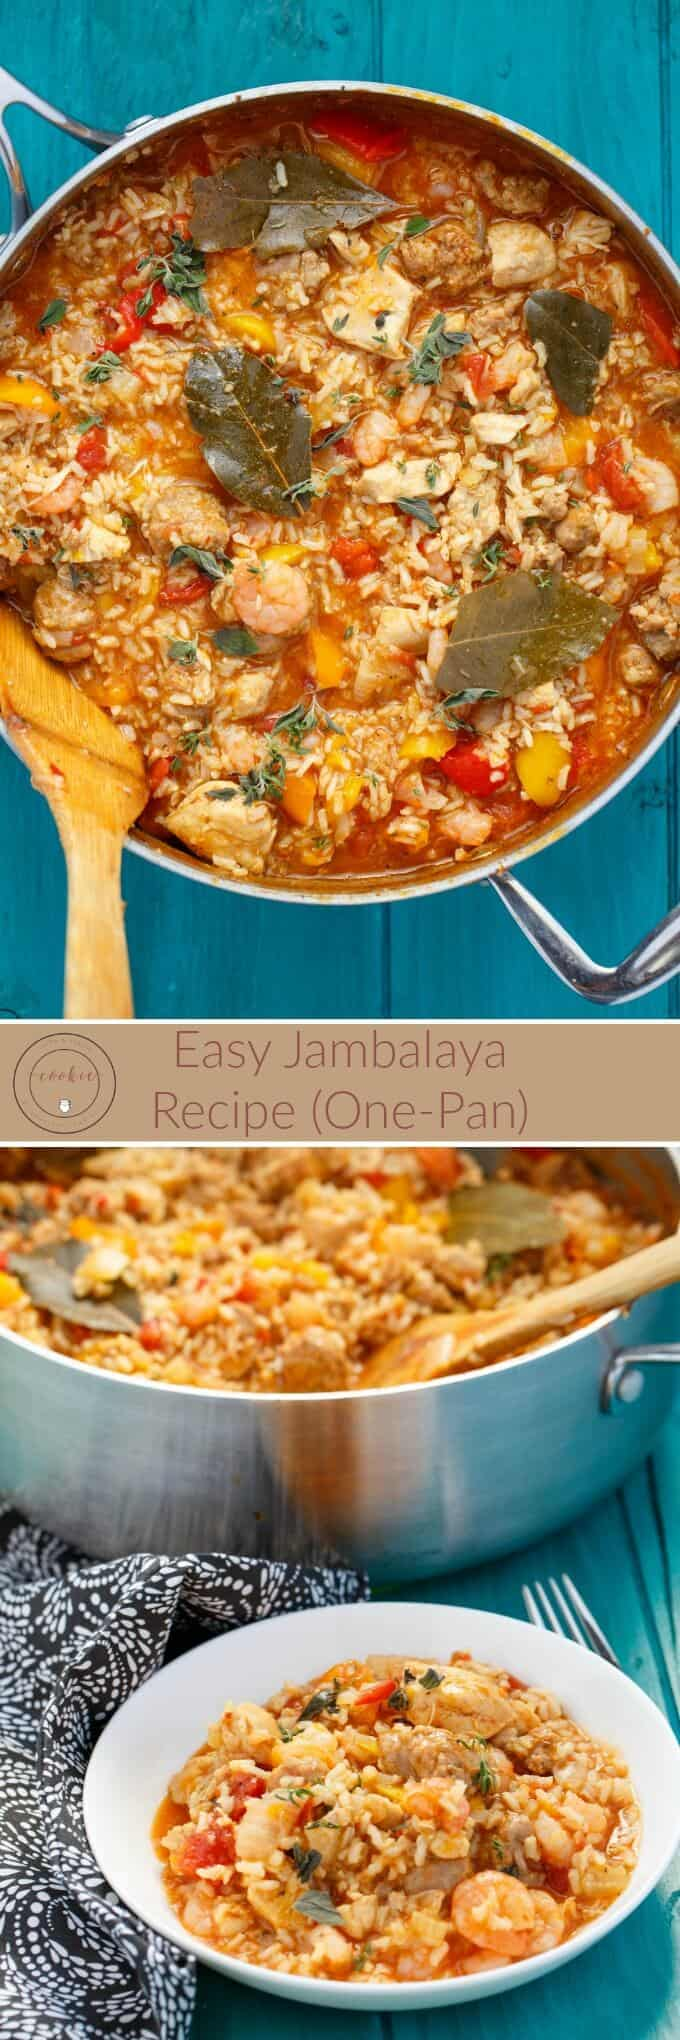 ... jambalaya chicken and shrimp jambalaya quick jambalaya quick jambalaya